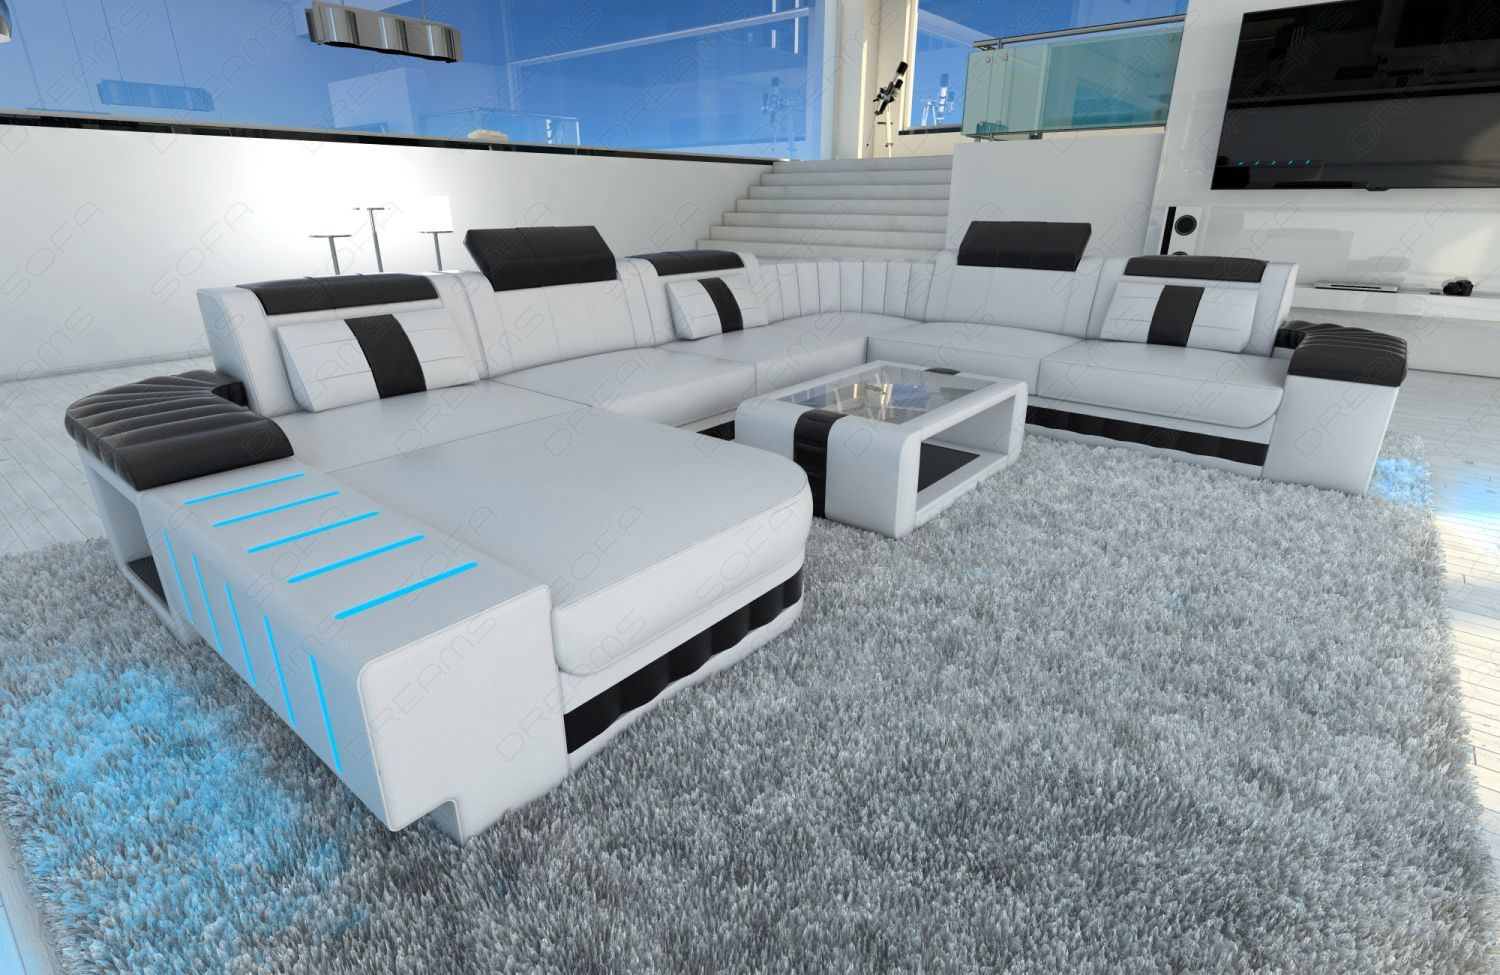 xxl sectional sofa bellagio led u shaped white black ebay. Black Bedroom Furniture Sets. Home Design Ideas